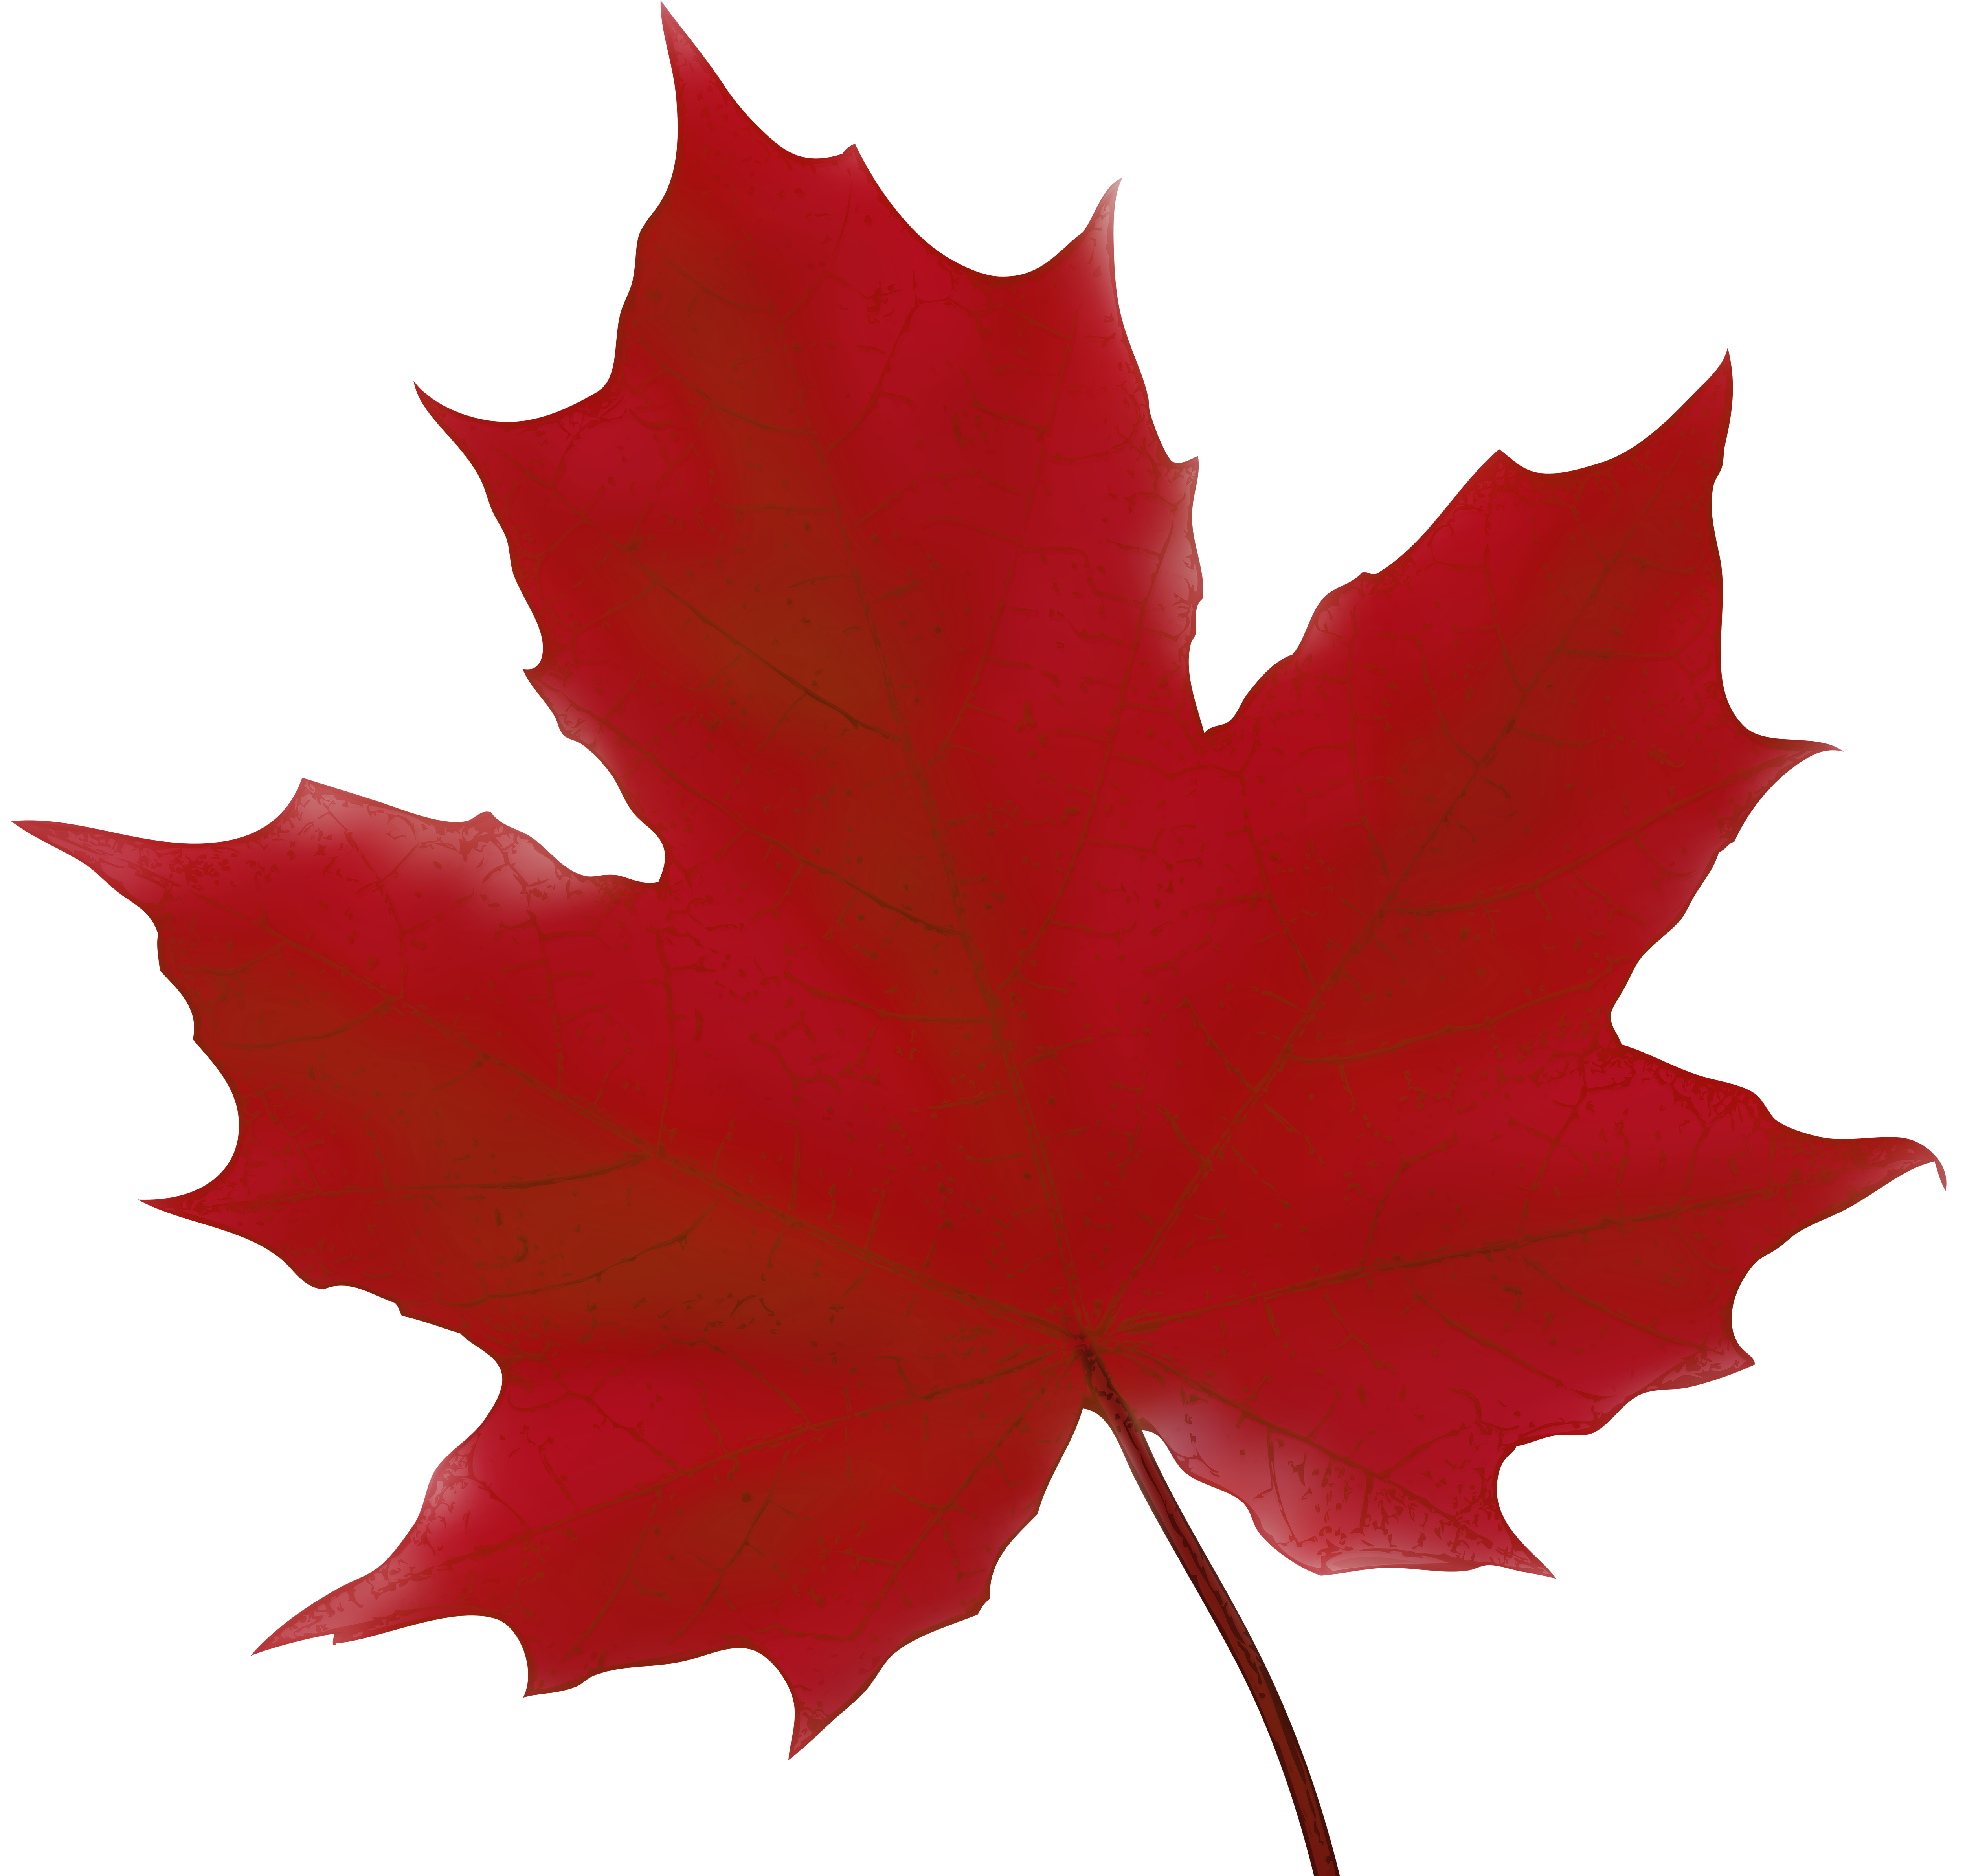 Maple Leaf Red Png Clip Art Image Gallery Yopriceville High Quality Images And Transparent Png Free Clipart Art Images Clip Art Art